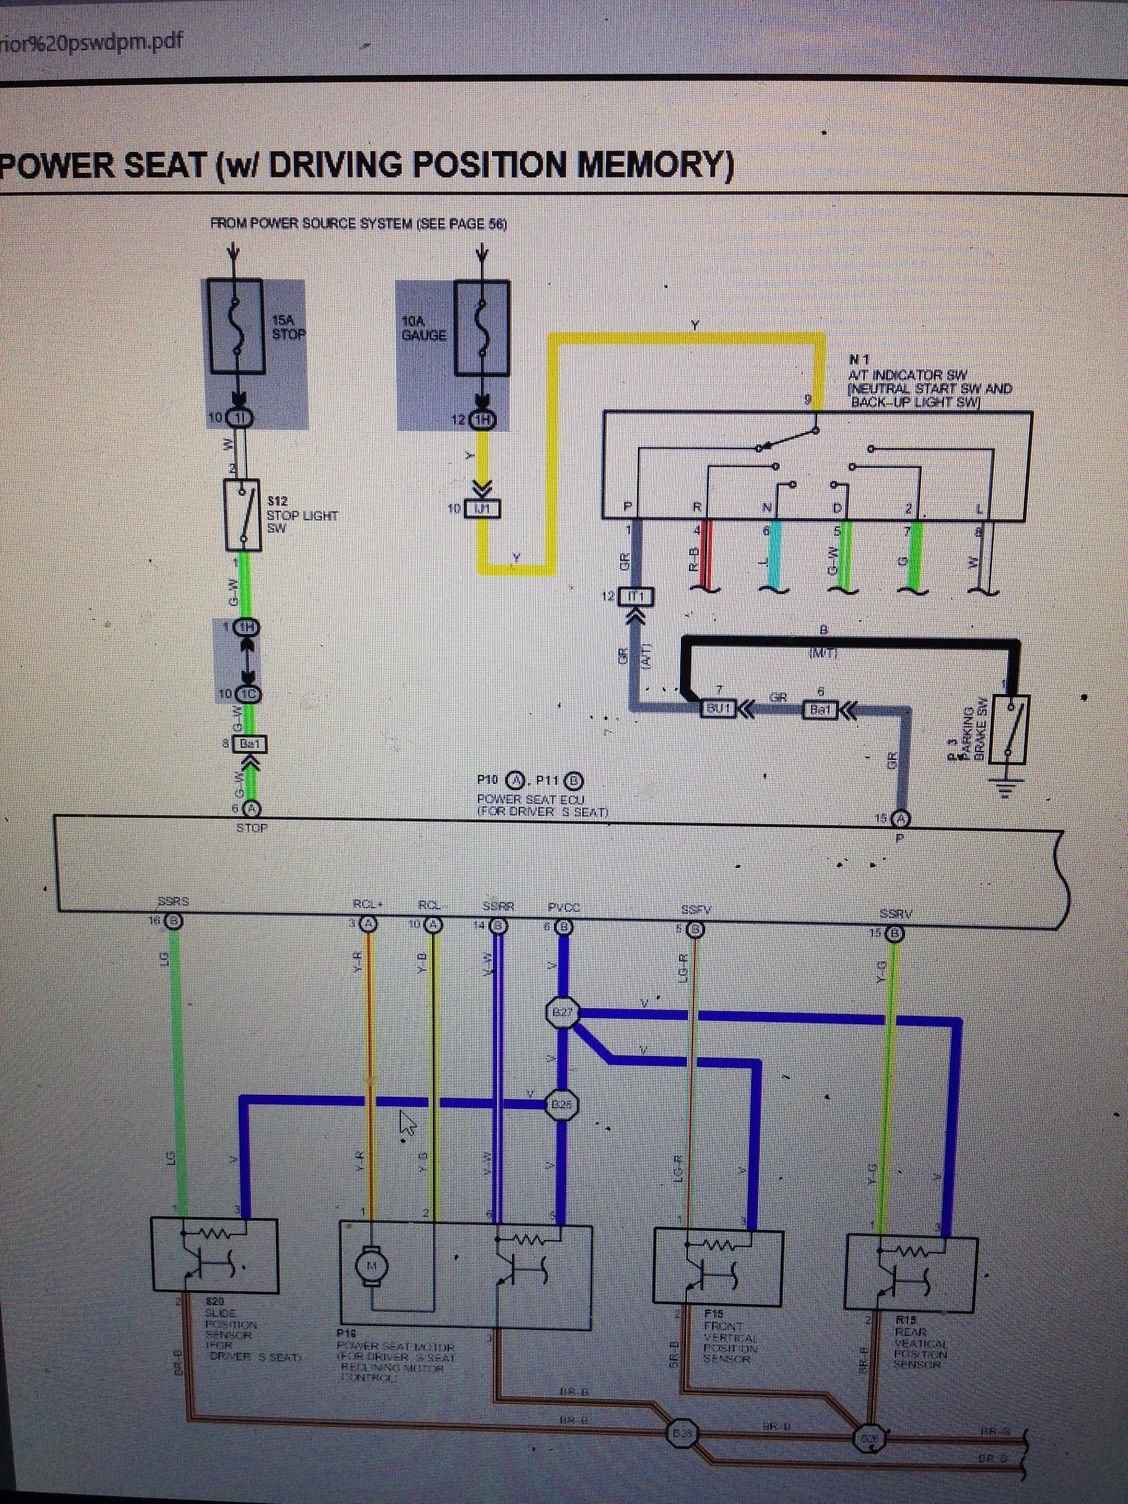 Sc300 Fuse Box Archive Of Automotive Wiring Diagram 1993 Lexus Gs300 Sc400 Layout Diagrams U2022 Rh Laurafinlay Co Uk 93